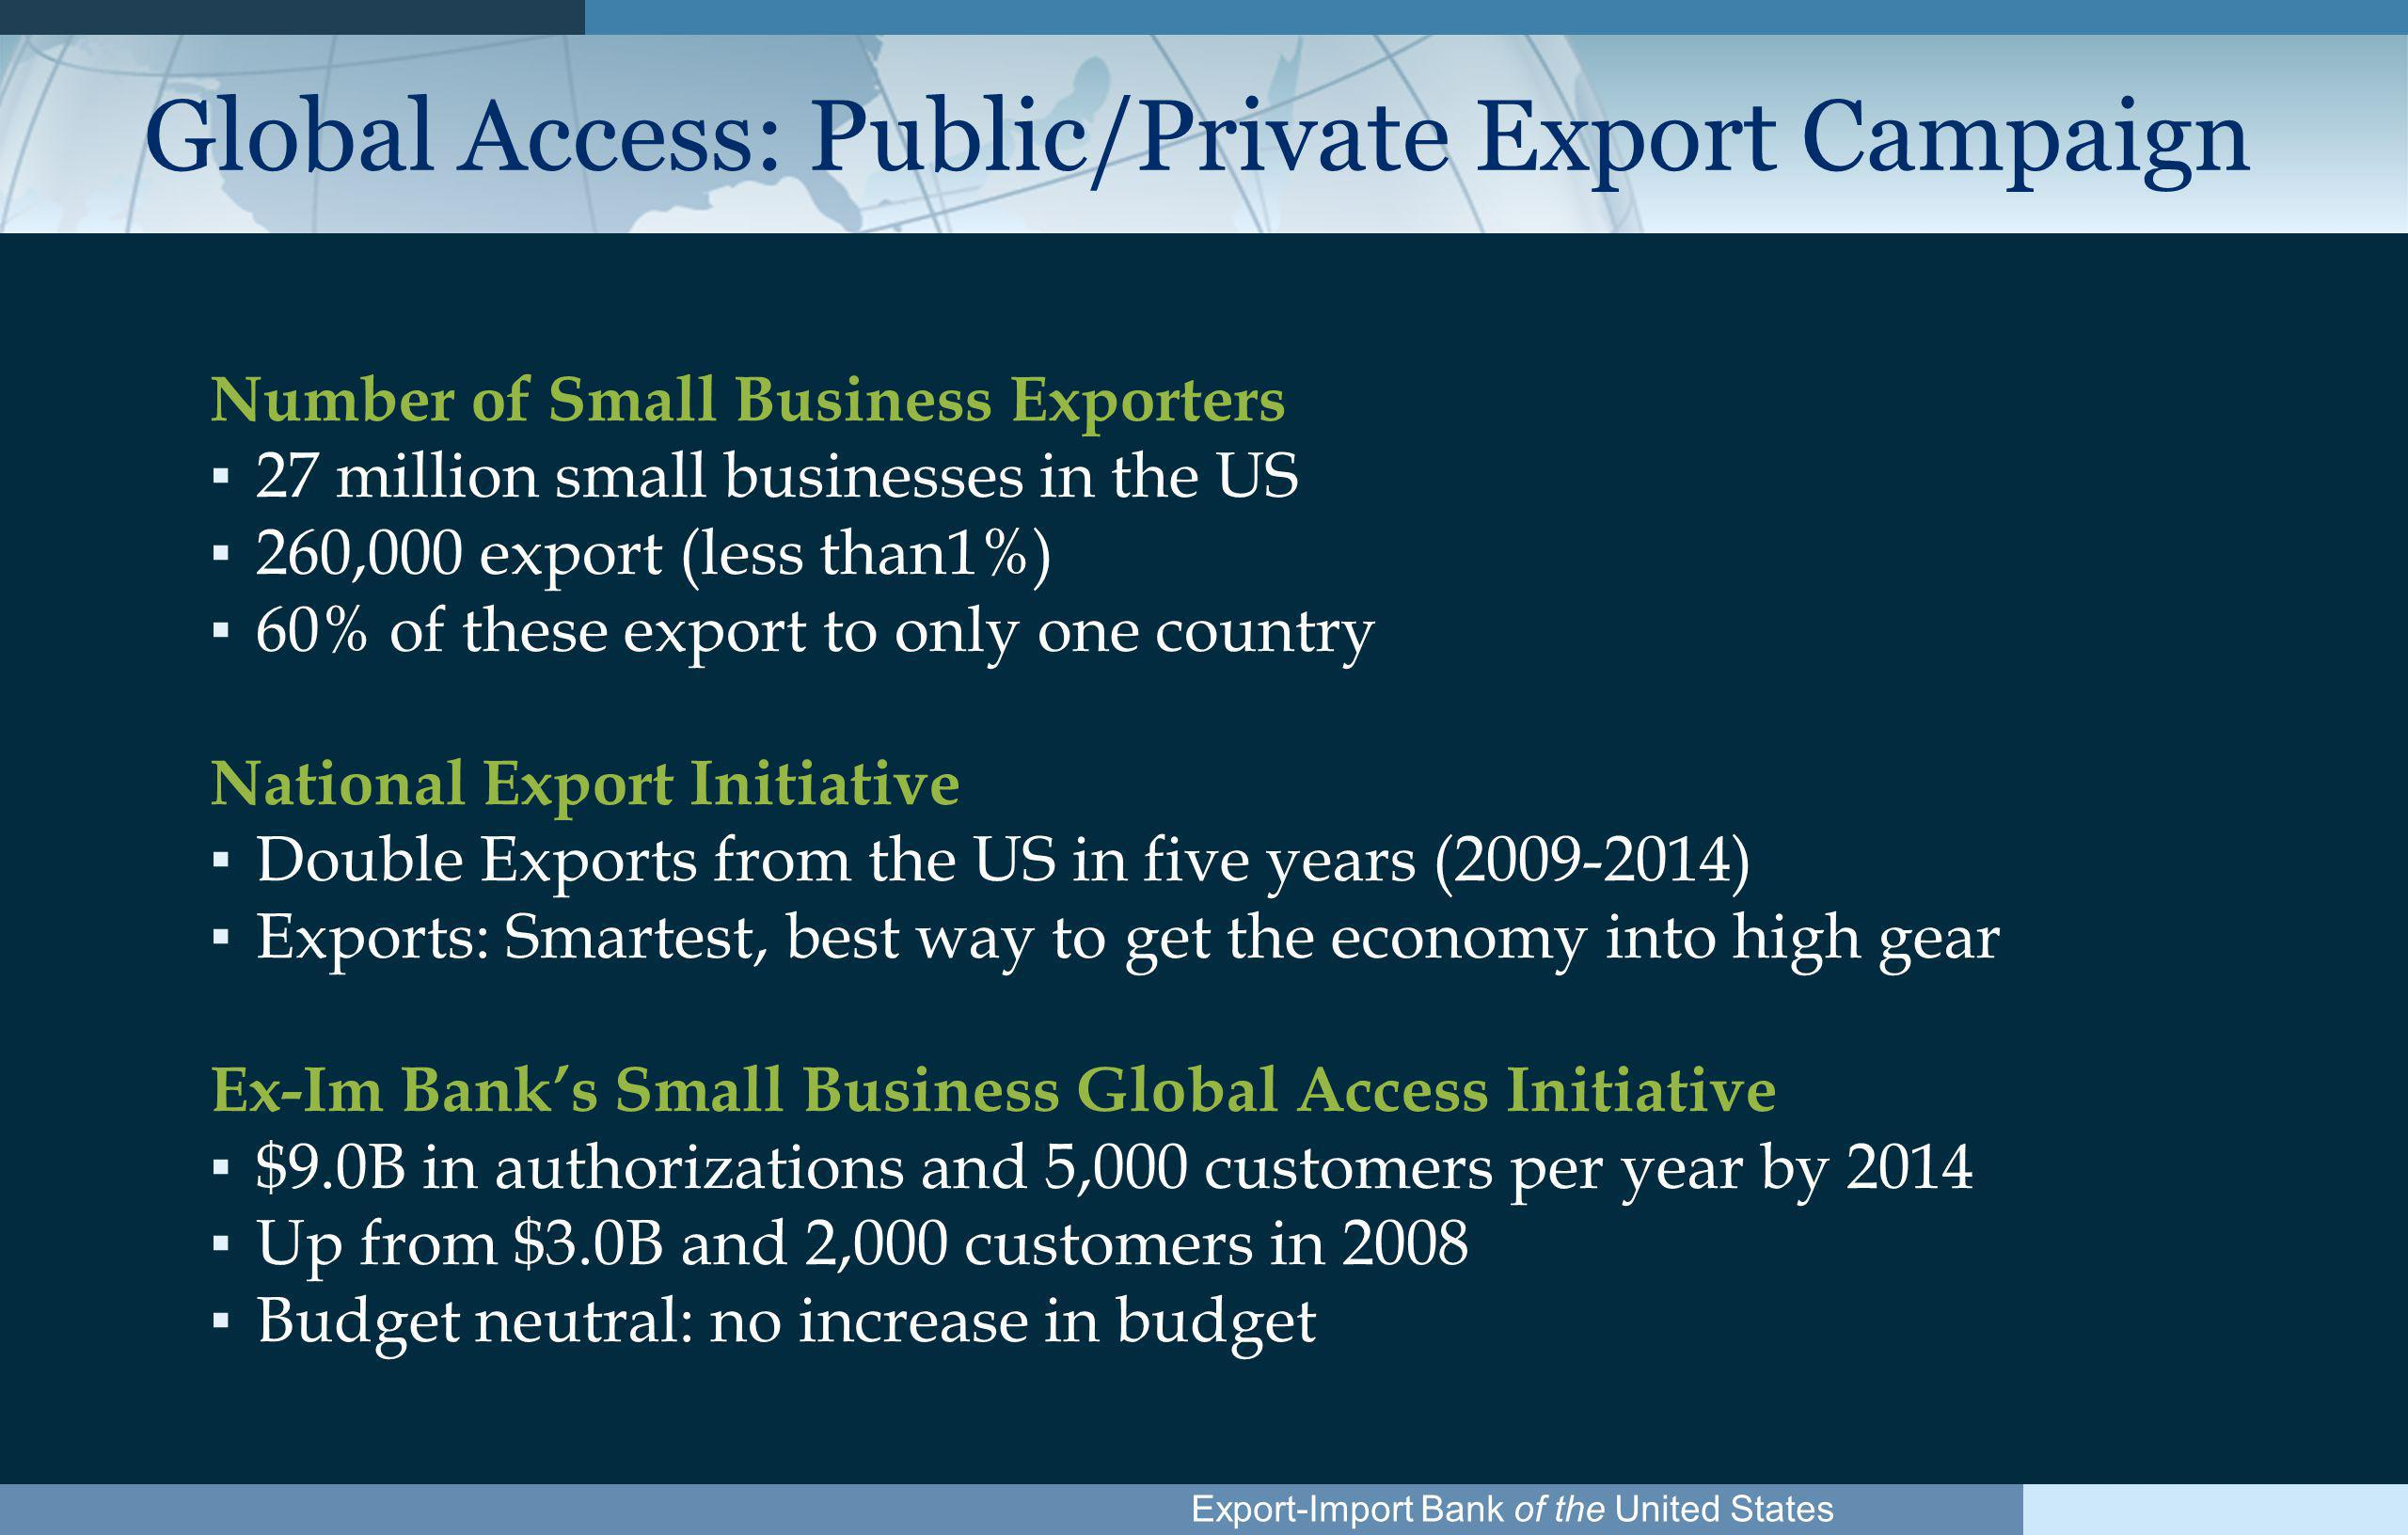 Export-Import Bank of the United States Global Access: Public/Private Export Campaign Number of Small Business Exporters ▪ 27 million small businesses in the US ▪ 260,000 export (less than1%) ▪ 60% of these export to only one country National Export Initiative ▪ Double Exports from the US in five years ( ) ▪ Exports: Smartest, best way to get the economy into high gear Ex-Im Bank's Small Business Global Access Initiative ▪ $9.0B in authorizations and 5,000 customers per year by 2014 ▪ Up from $3.0B and 2,000 customers in 2008 ▪ Budget neutral: no increase in budget